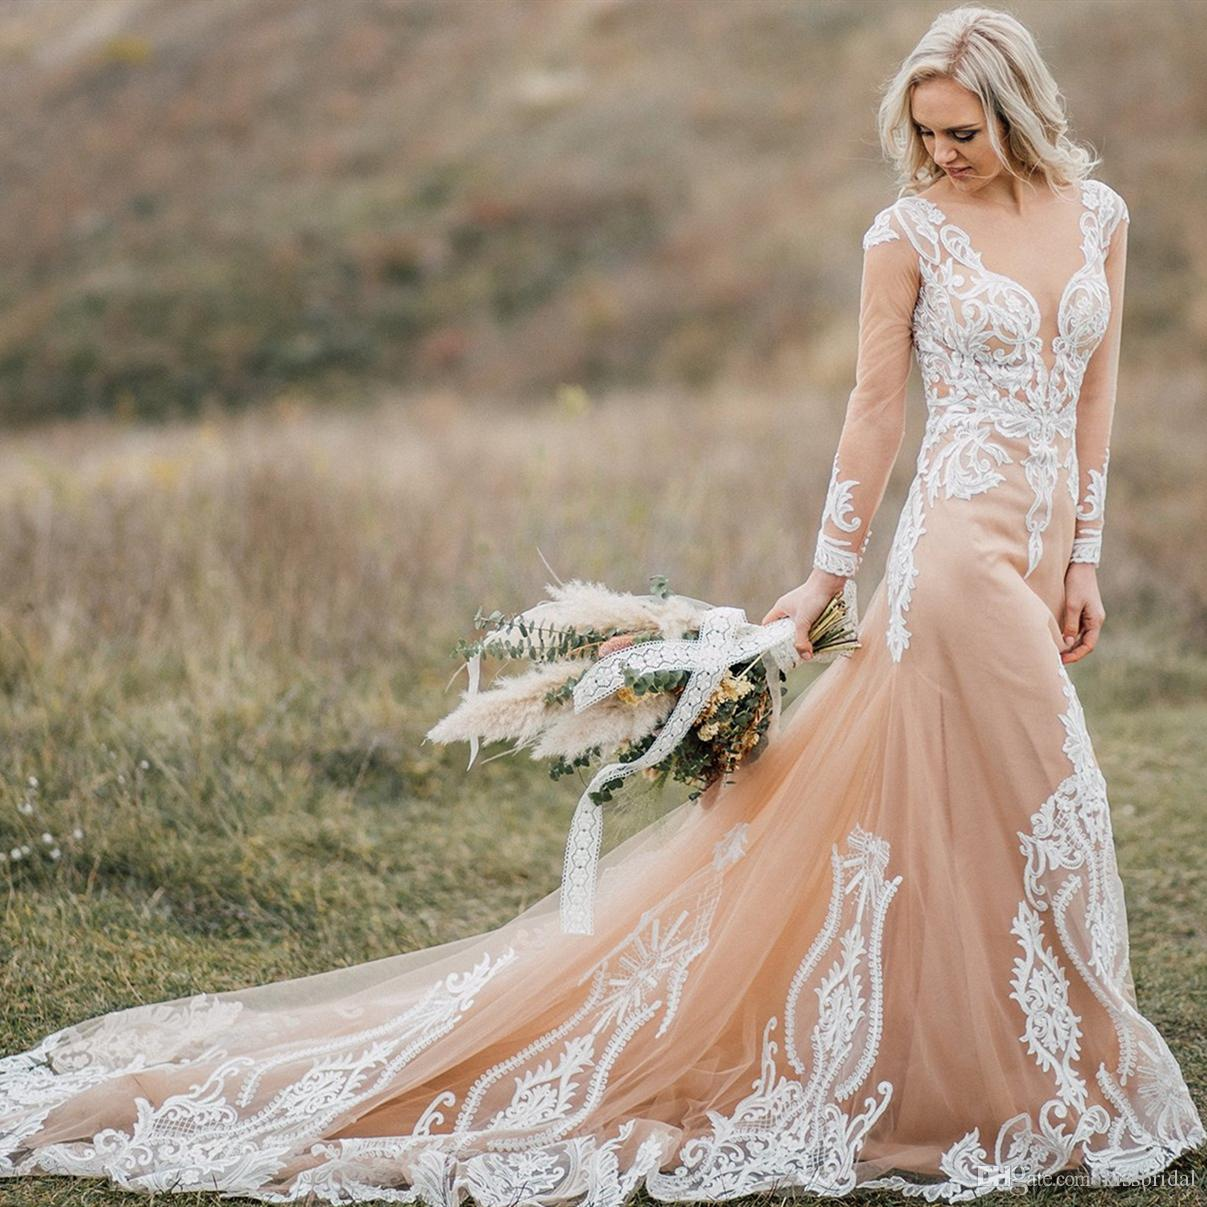 Boho Wedding Dresses With Nude Underlay Champagne Nude Tulle Bridal Gowns With Ivory Lace Appliques Bridal 2019